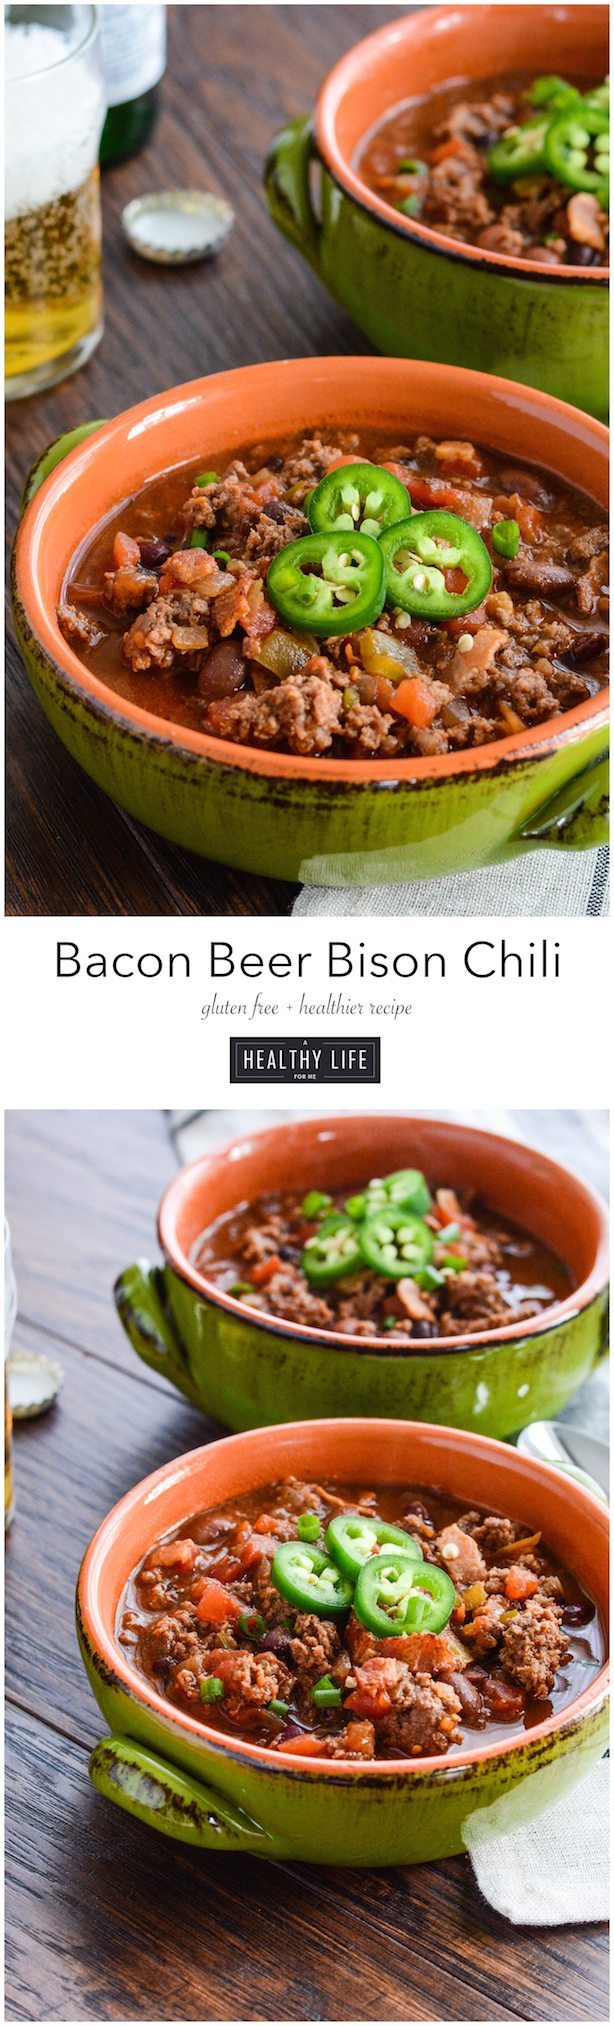 Bacon Beer Bison Chili | ahealthylifeforme.com